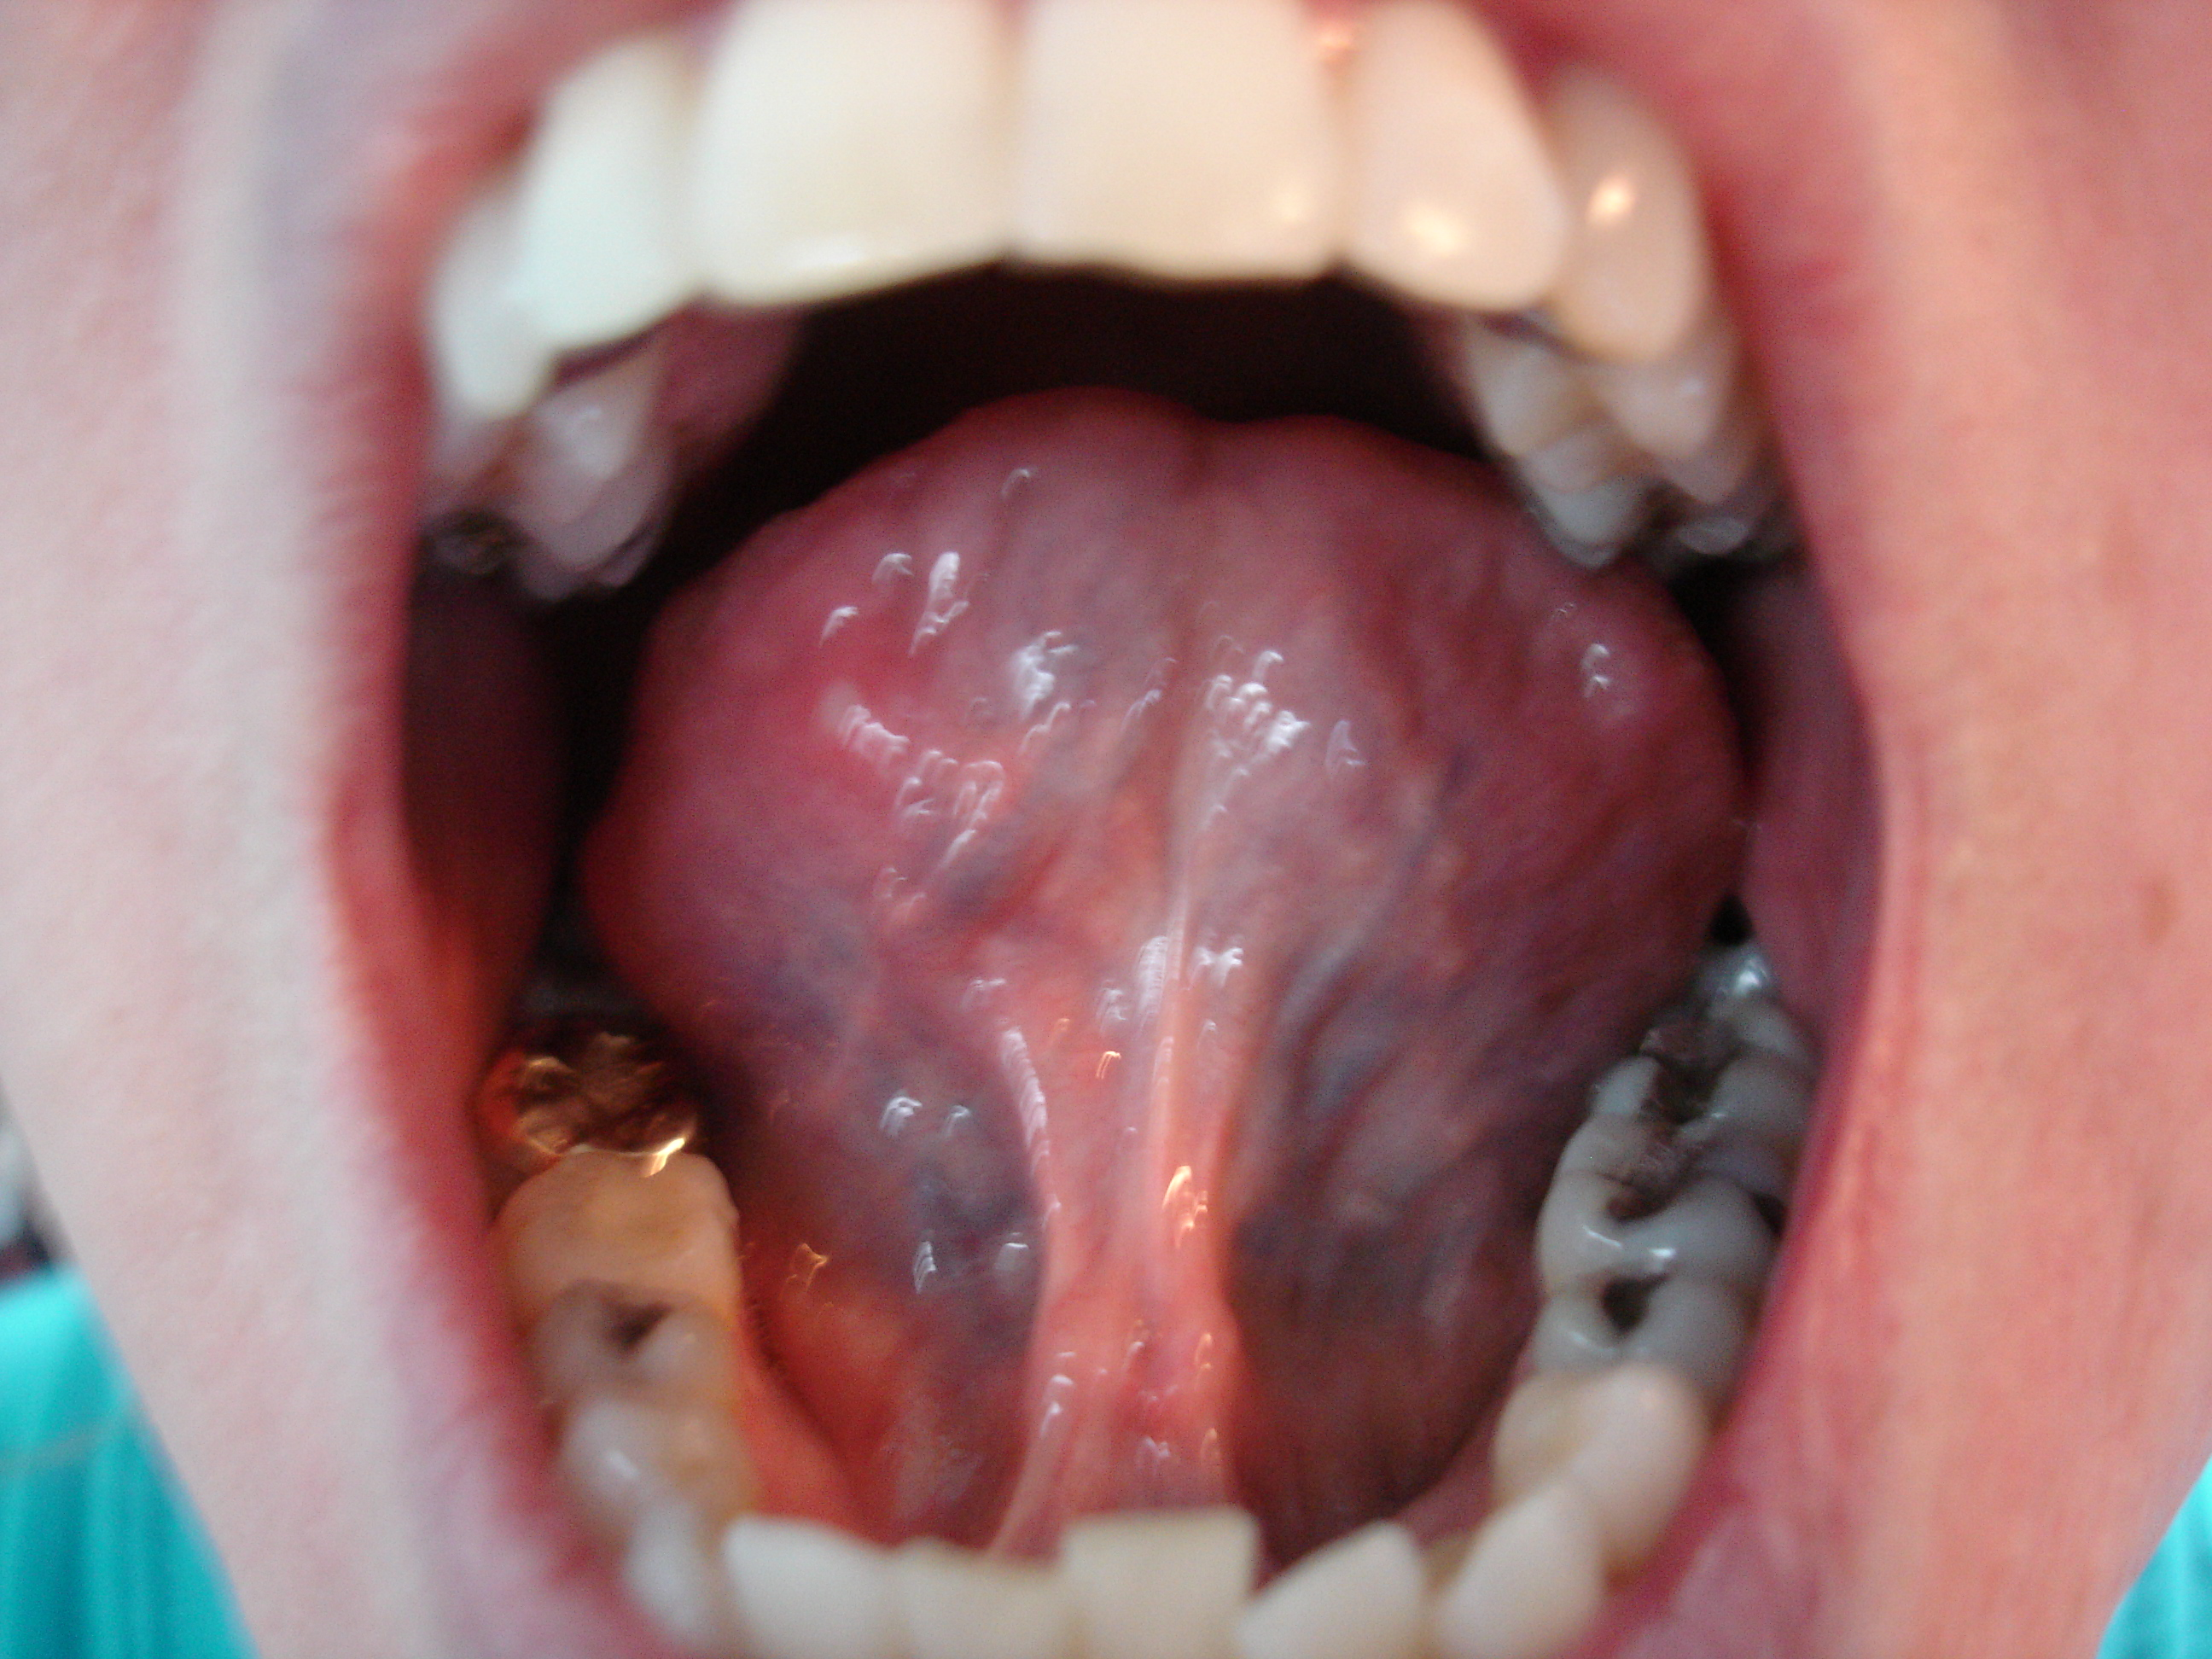 I just noticed the large veins under my tongue are dark blue,